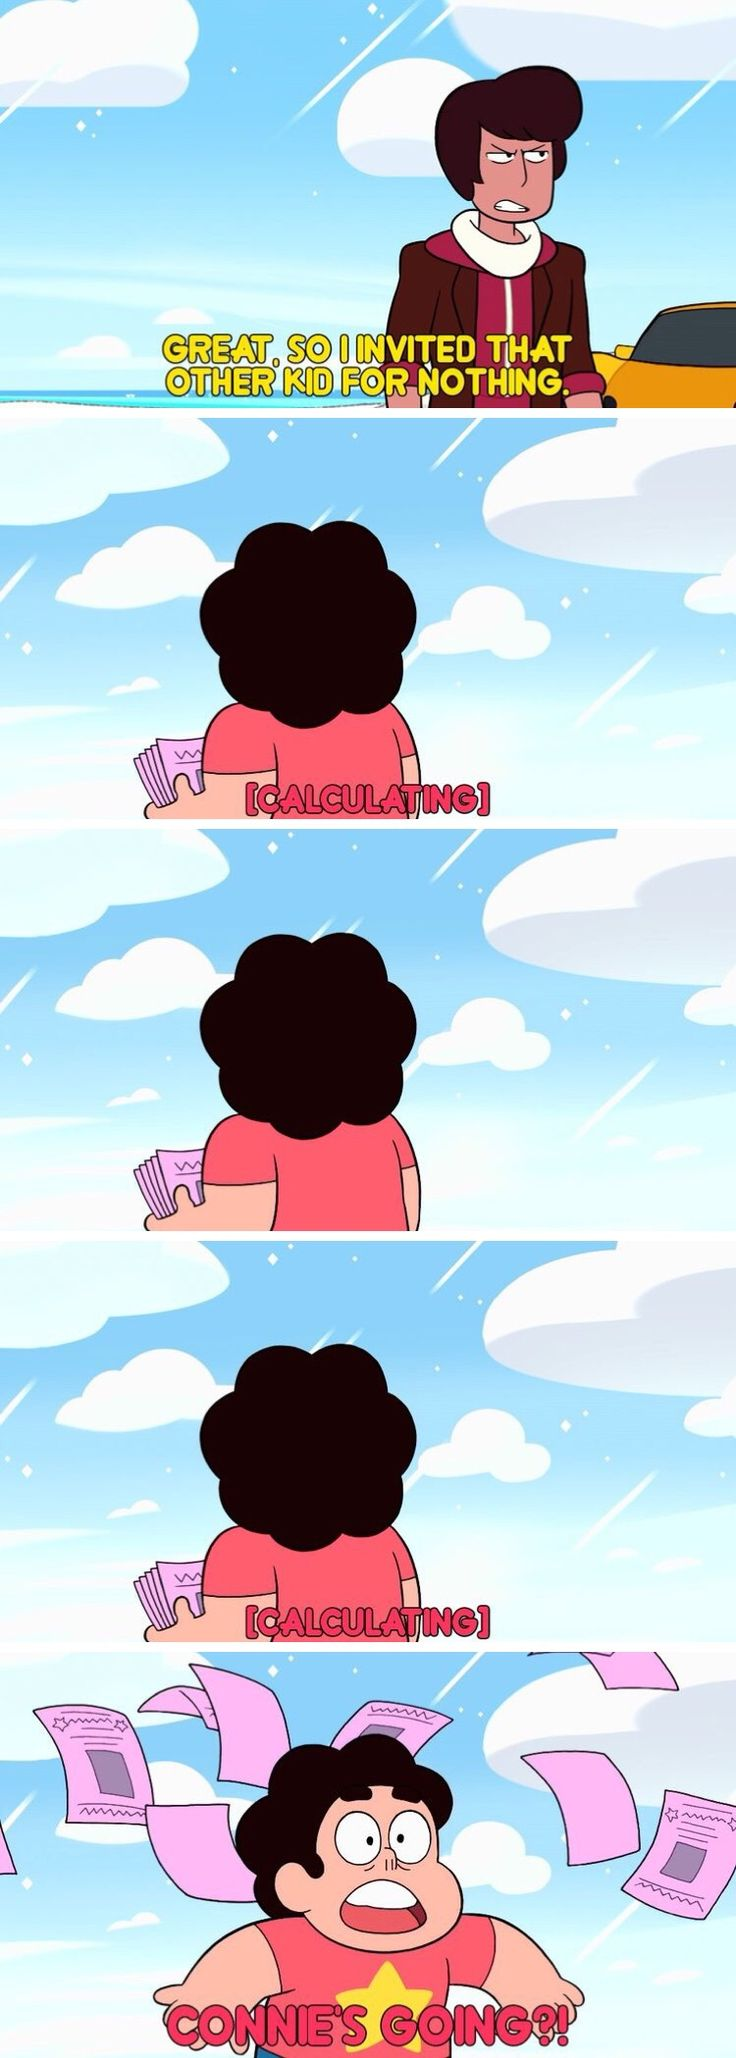 So yeah. KEVIN is going to be the instrument that brings Steven and Connie back together. I highly doubt we'll actually see Stevonnie yet. That would take quite a lot of healing for just one episode. It's especially ironic considering how Kevin has freaked Stevonnie out to the point where they unfused in both of his previous appearances. And also convinced Steven and Connie to fuse for all the wrong reasons in Beach City Drift.